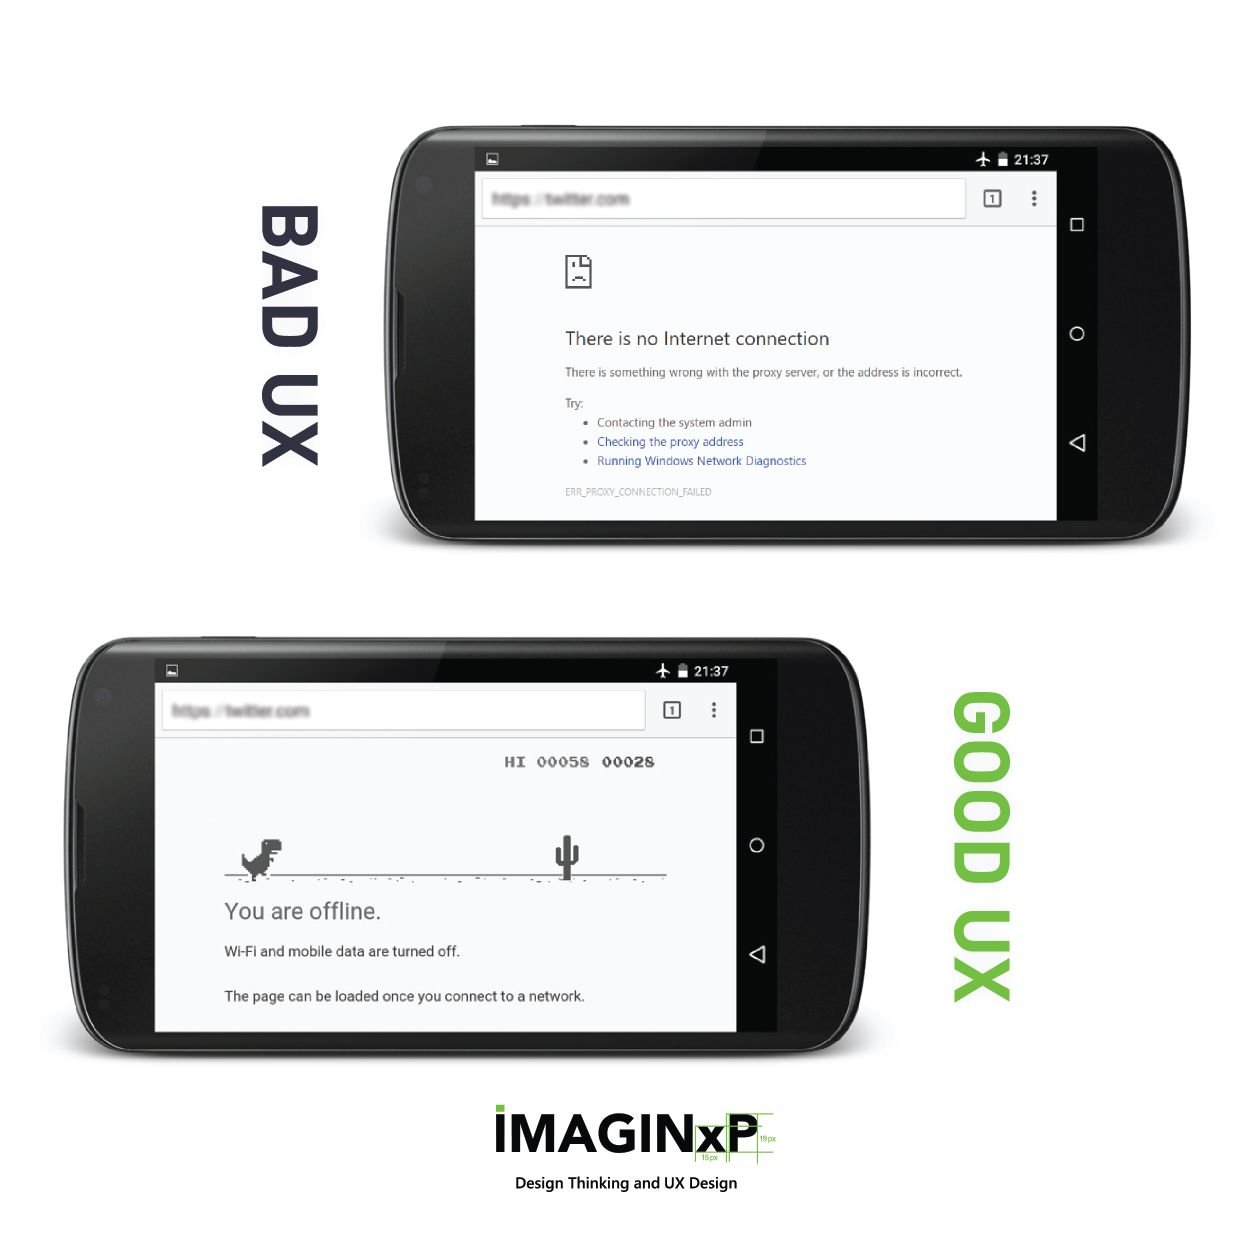 Bad UX vs Good UX Follow imaginxp and stay updated! https